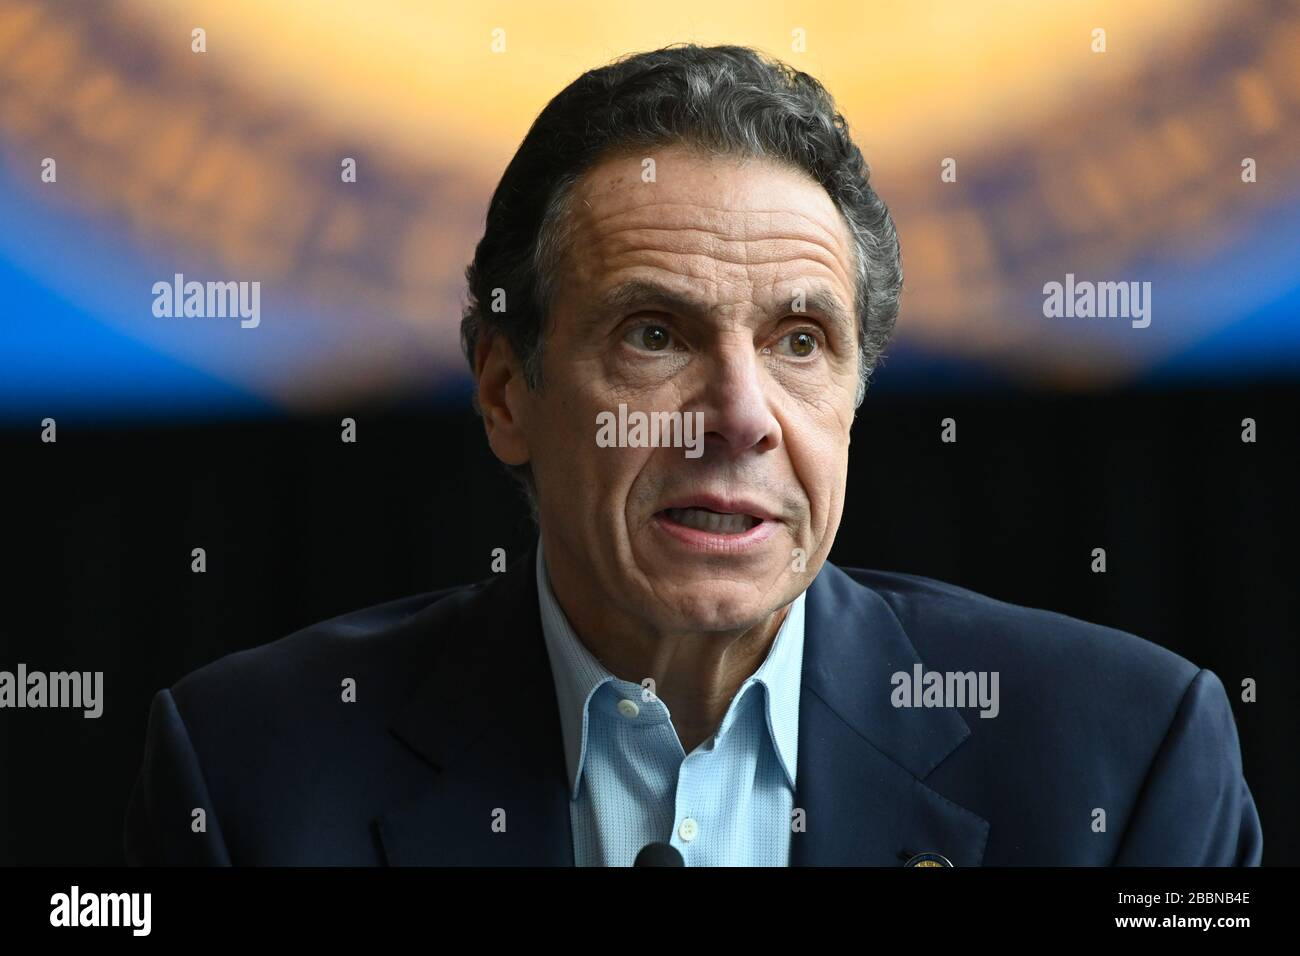 Andrew Cuomo holds a briefing on the COVID-19 response on March 30, 2020.at the Jacob K. Javits Convention Center in New York. Stock Photo